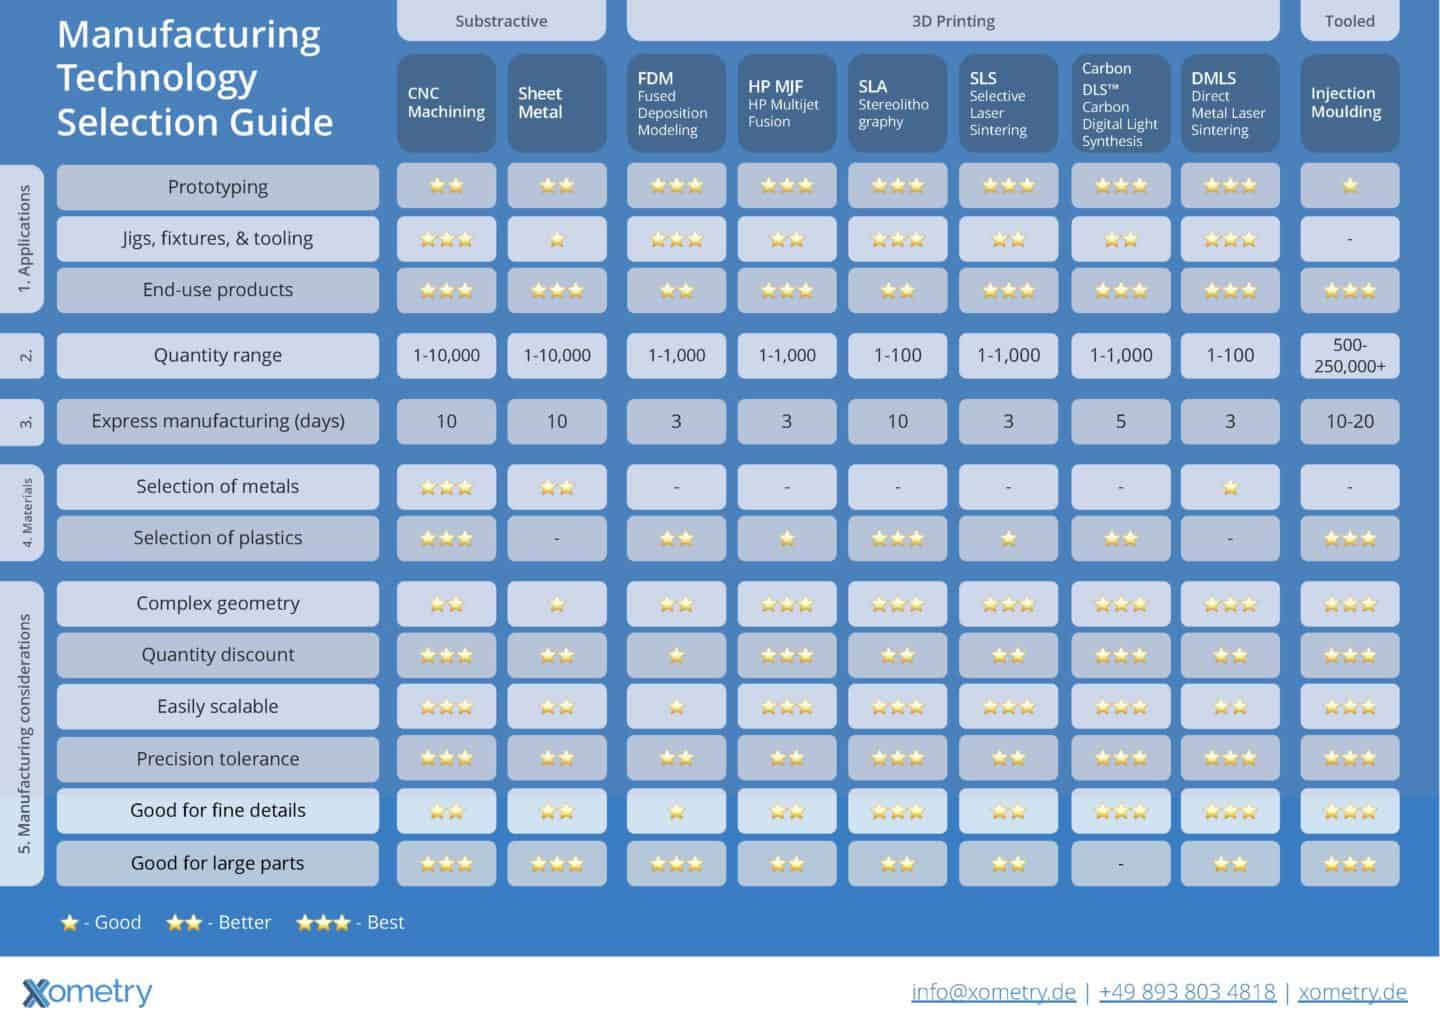 Manufacturing Technology Selection Guide